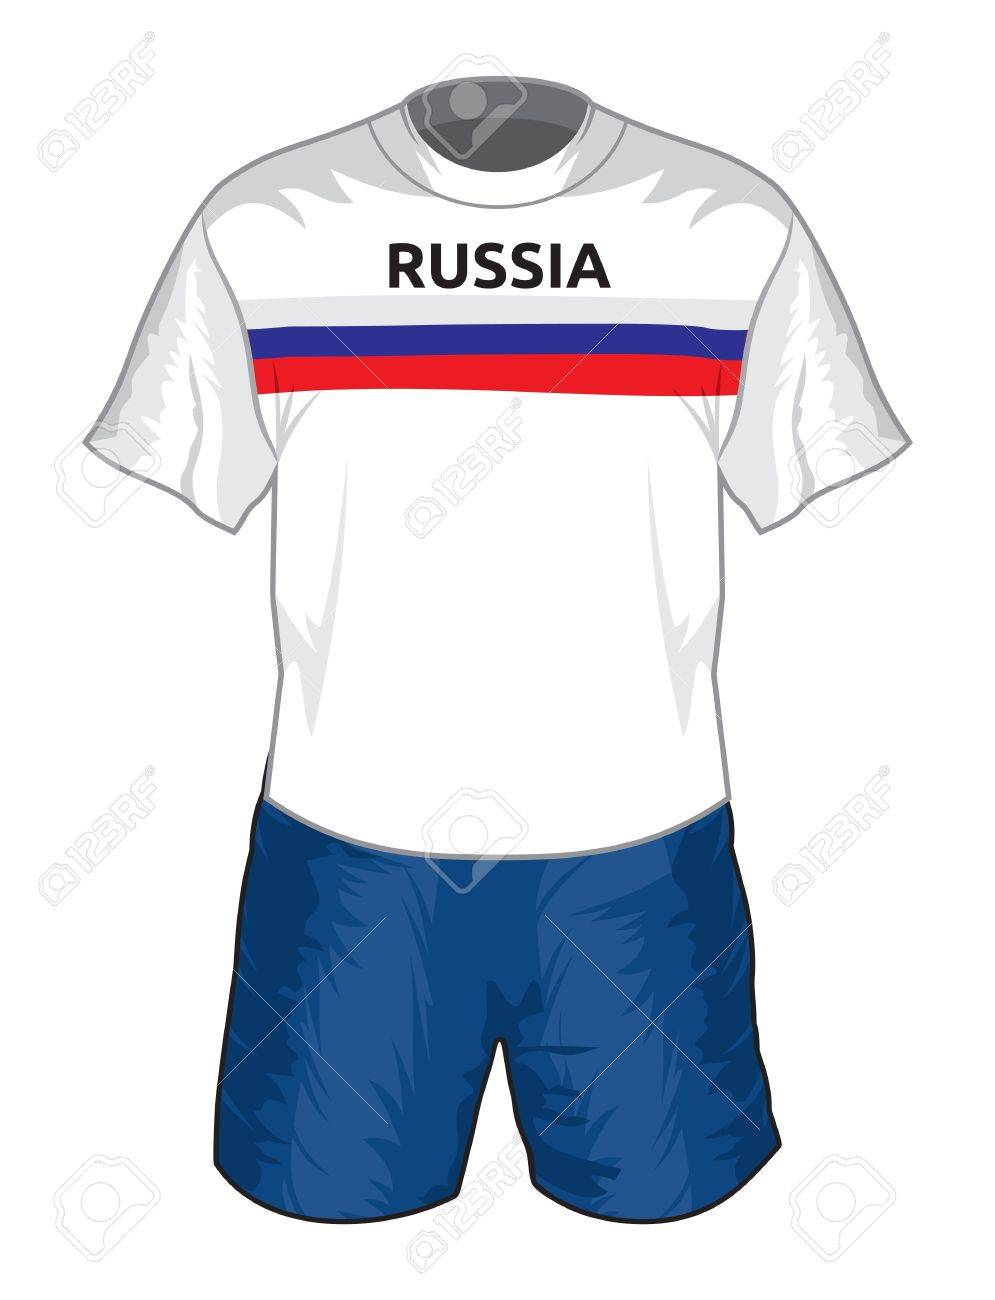 a8abce0eb Russia football uniform Stock Vector - 17988536